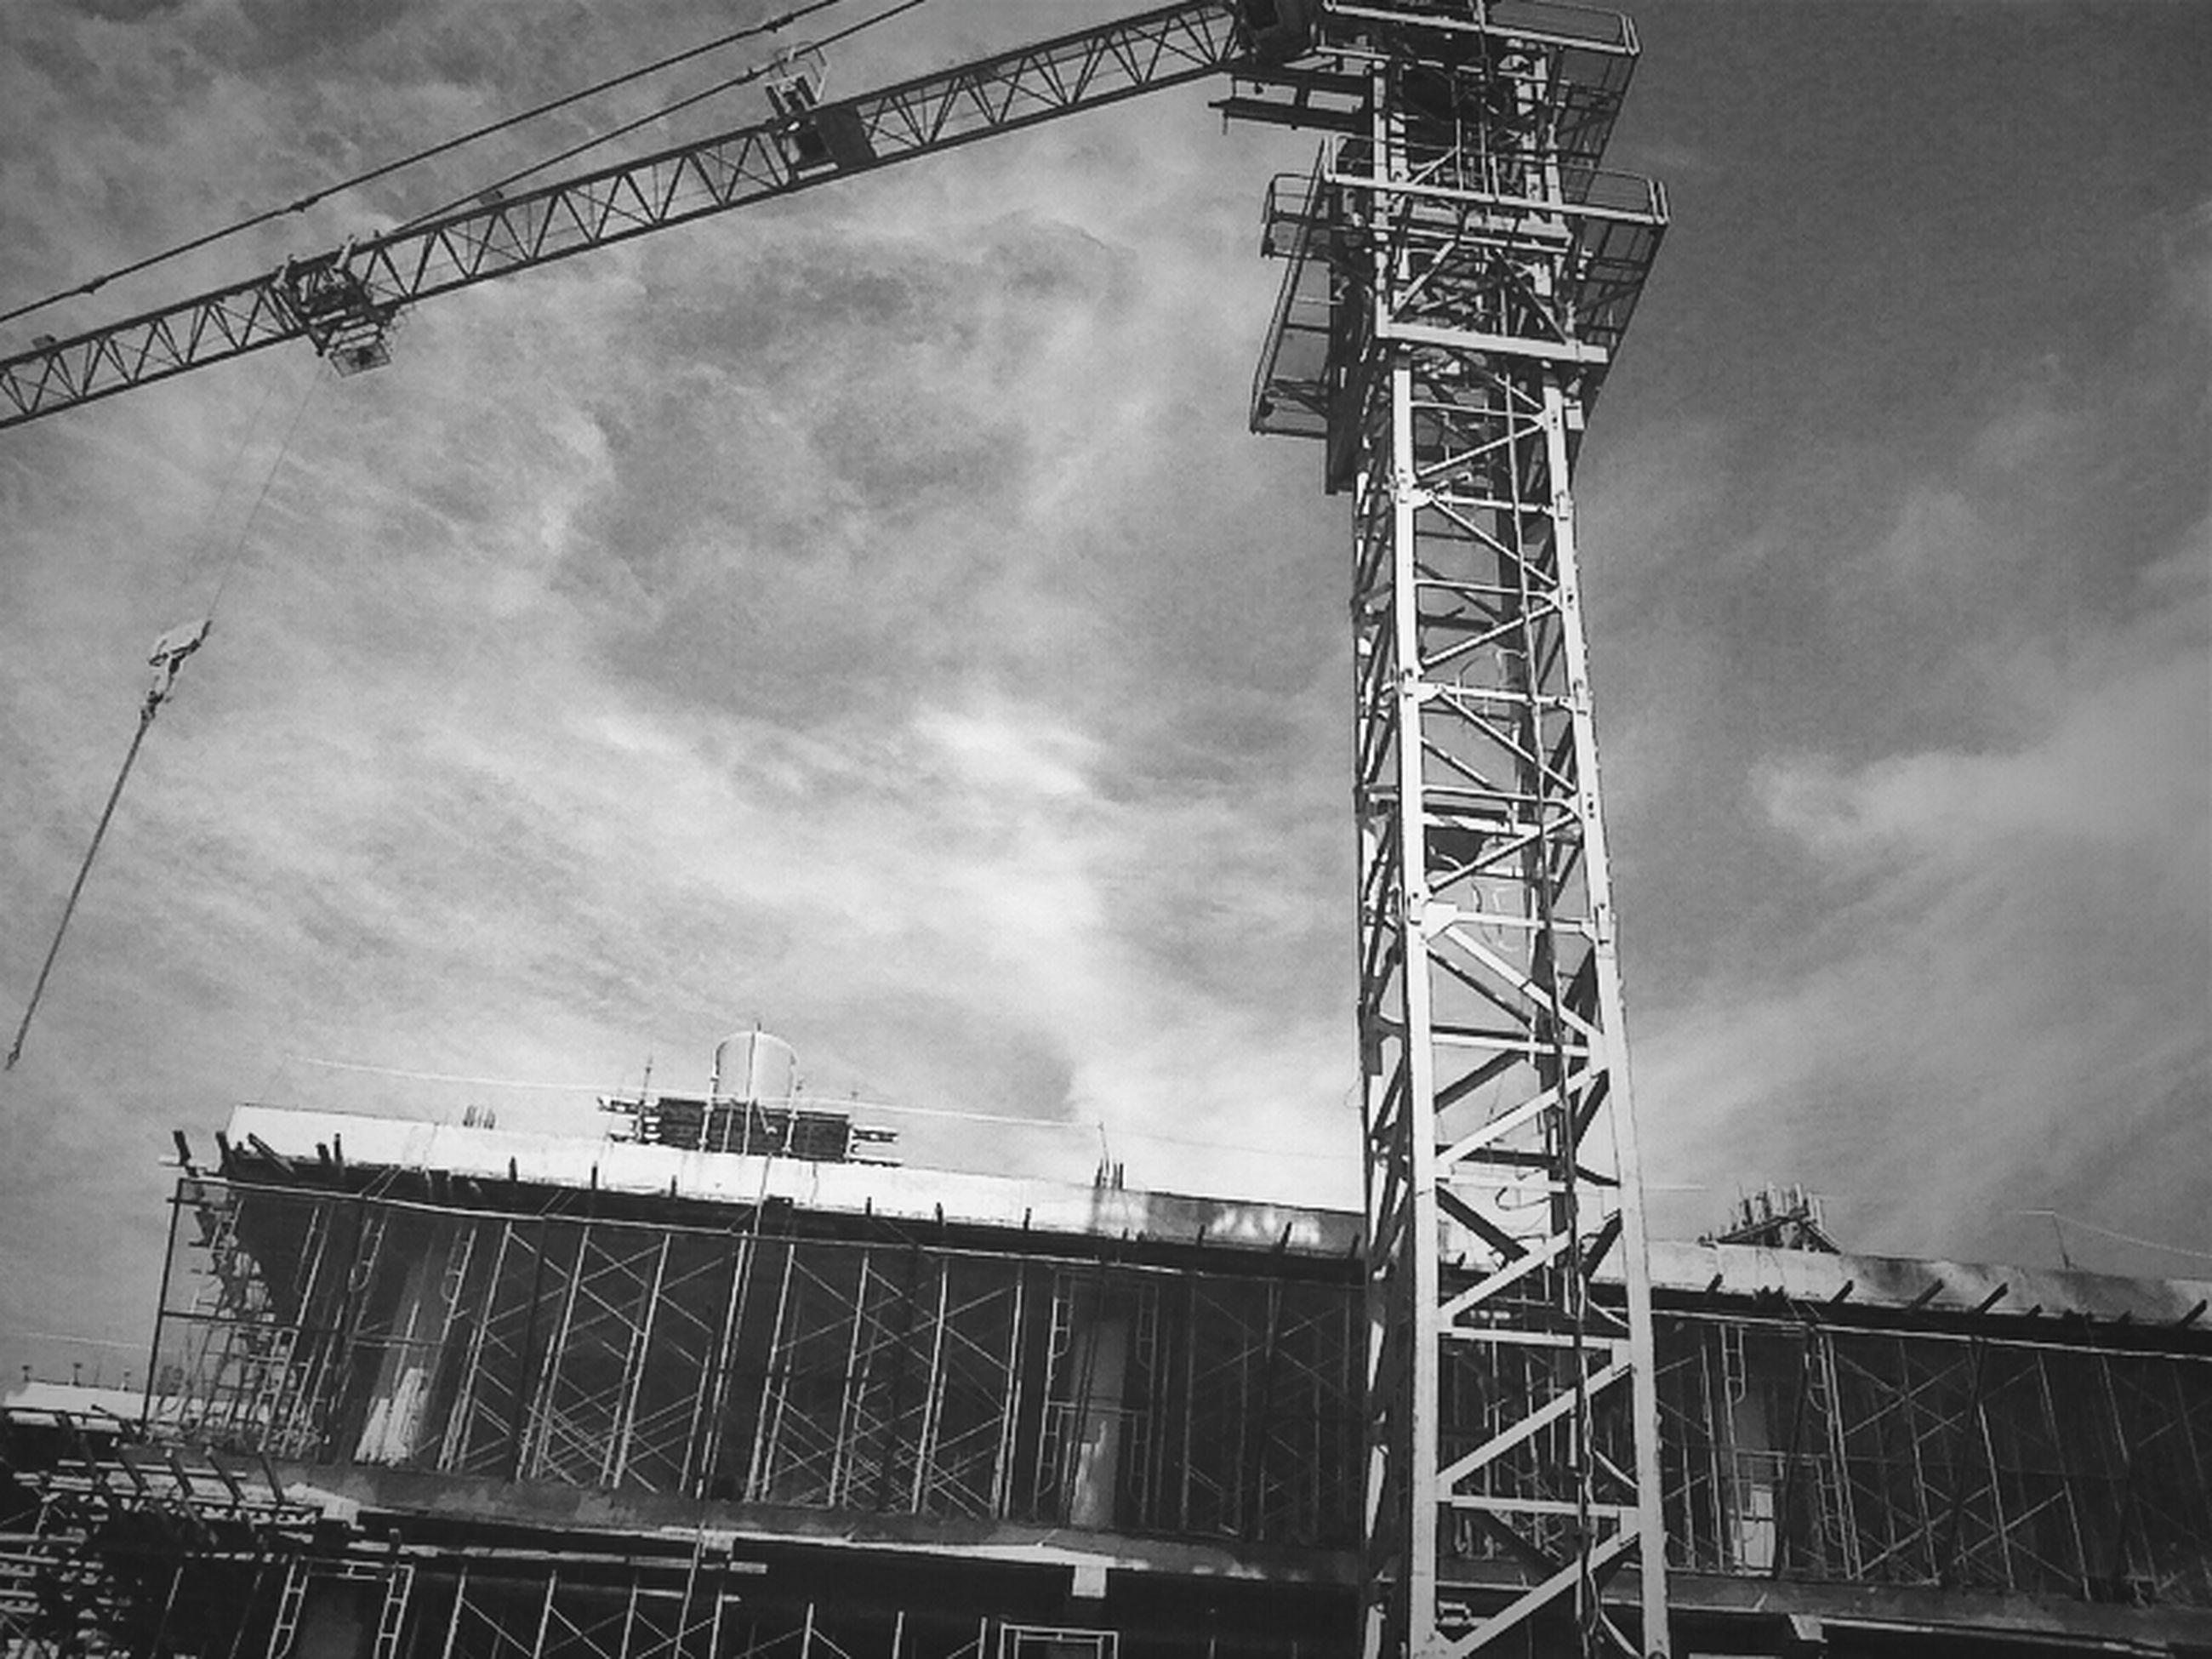 low angle view, sky, built structure, architecture, cloud - sky, connection, cloudy, construction site, metal, development, crane - construction machinery, tall - high, building exterior, cloud, electricity pylon, tower, industry, outdoors, no people, construction